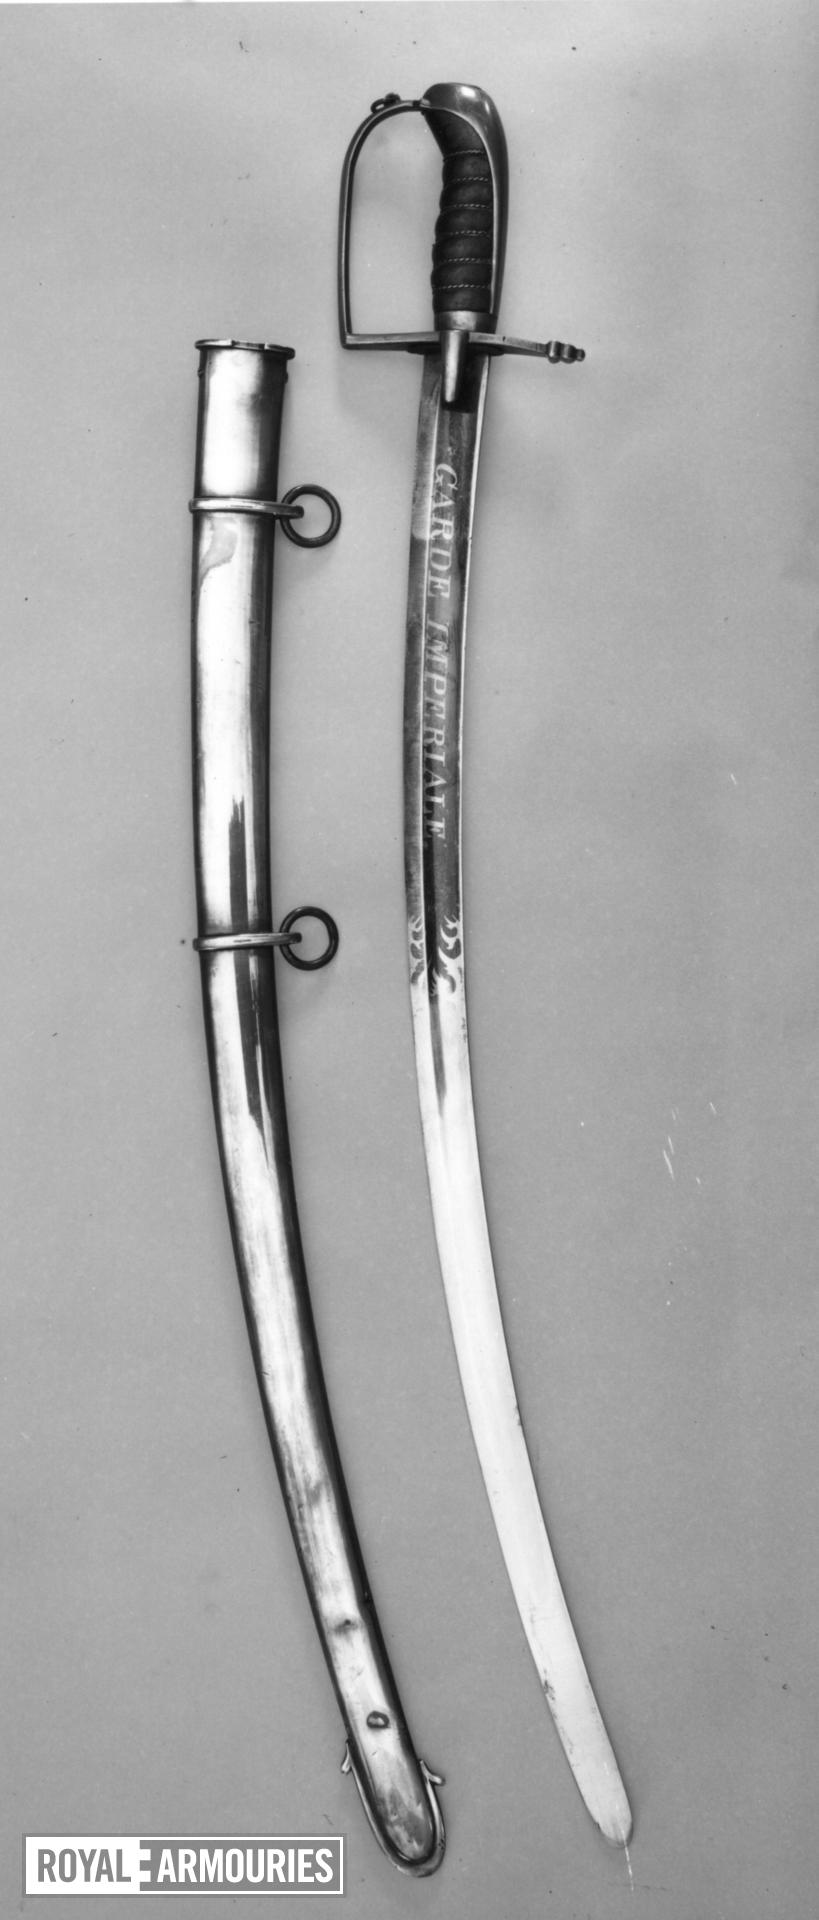 Sabre and scabbard Boy's sabre (A) and scabbard (B), Roi de Rome French.